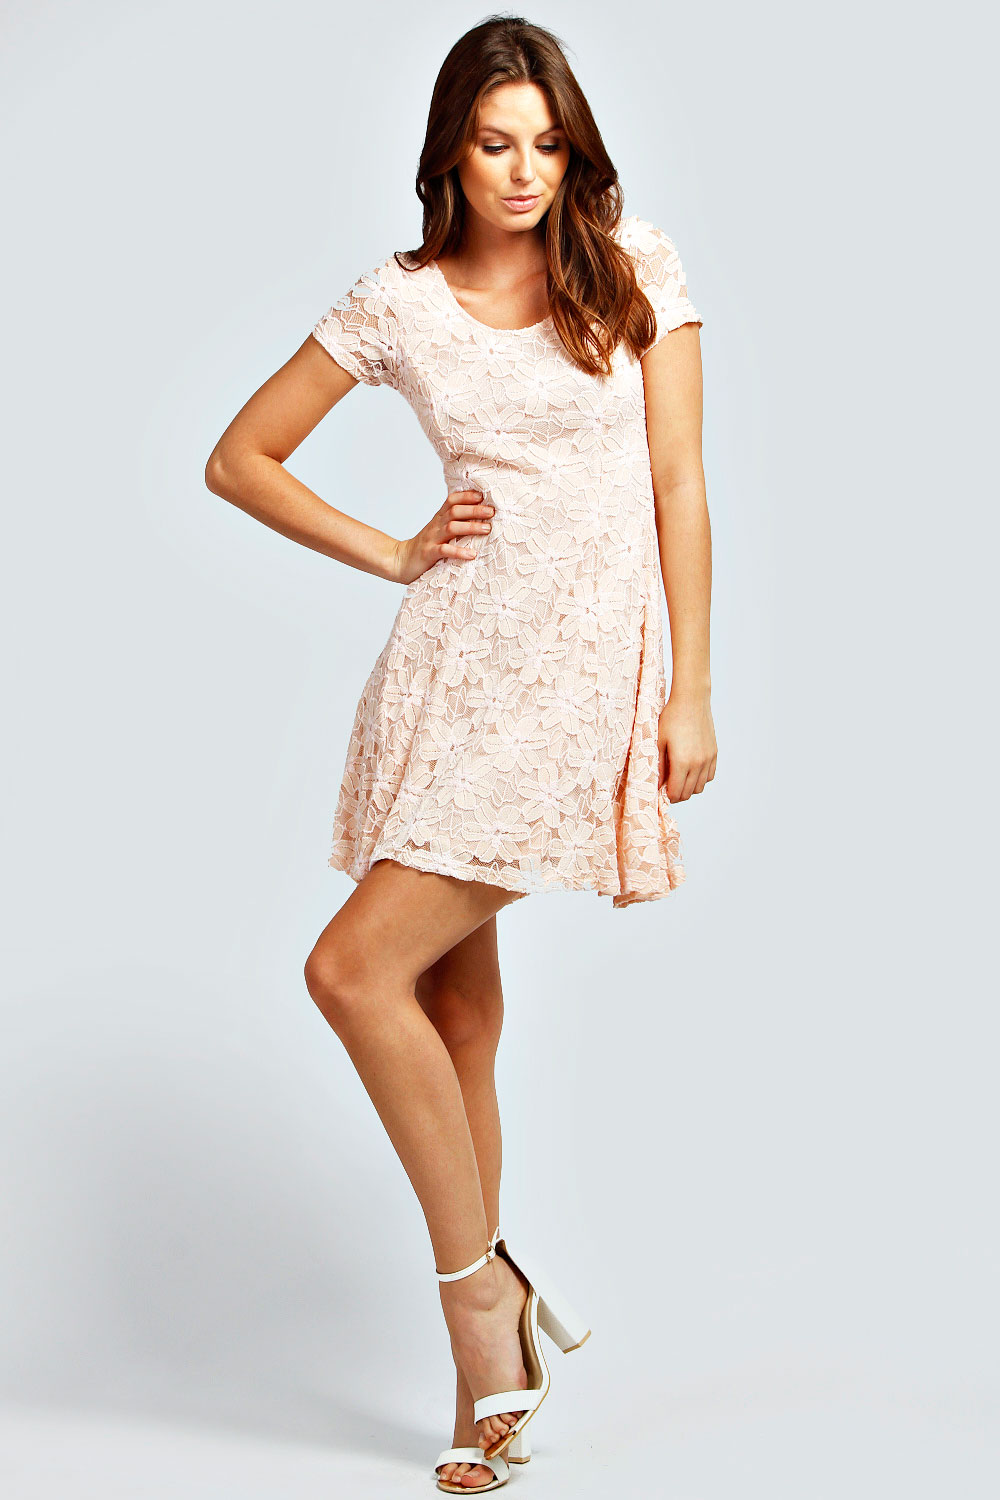 Boohoo-Womens-Ladies-Tina-Floral-Lace-Crew-Neck-Cap-Sleeve-Skater-Dress